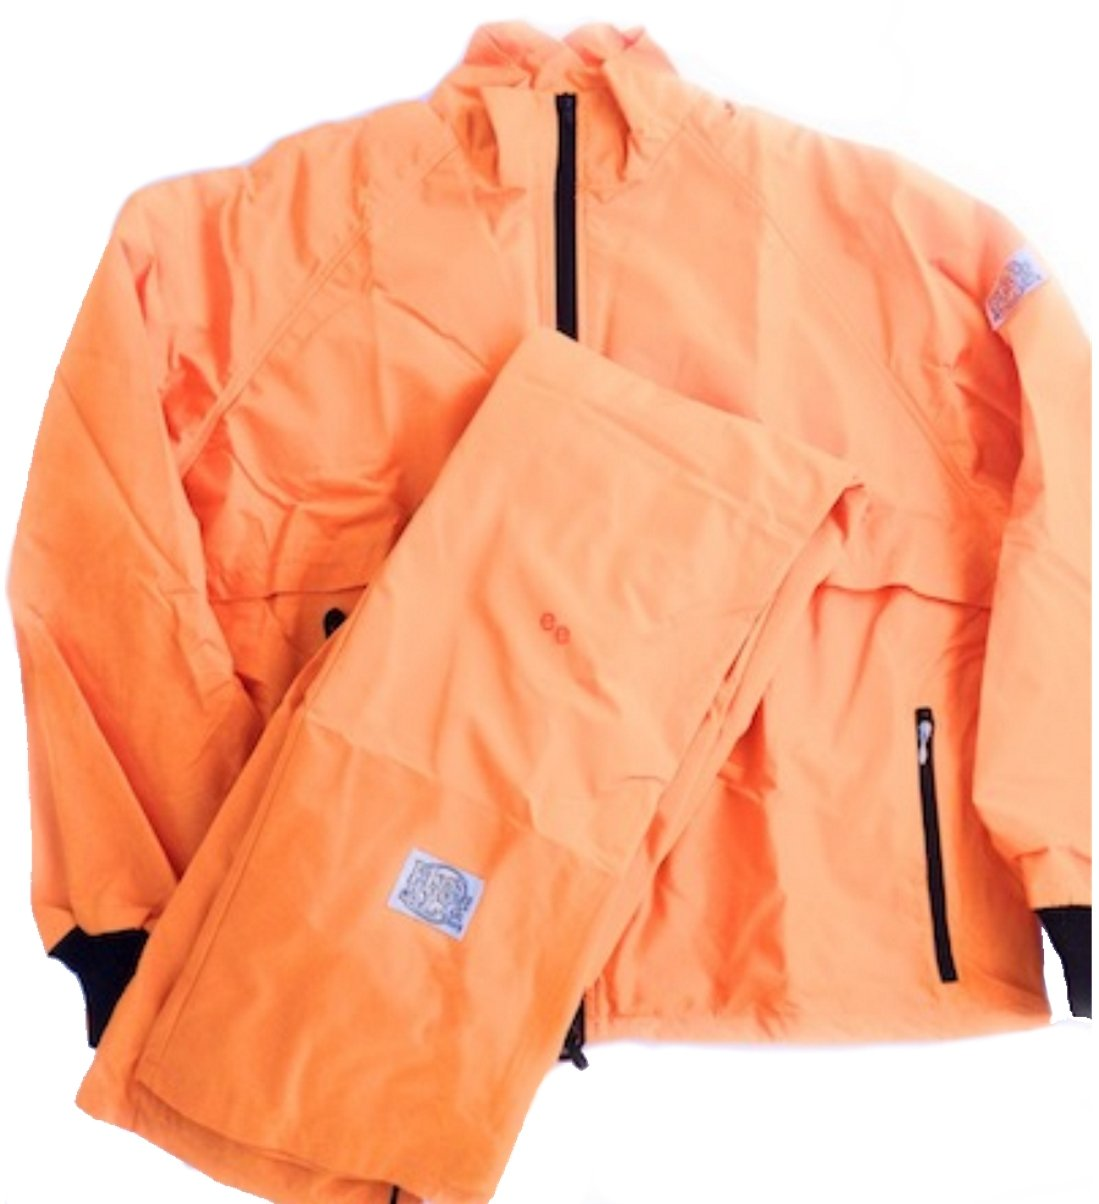 Moss Brown & Co. Bright Colors, 2-Layer Moss-TEX Waterproof, Breathable, Big & Tall Track Suits. Marigold Orange - 4X by Moss Brown & Co.